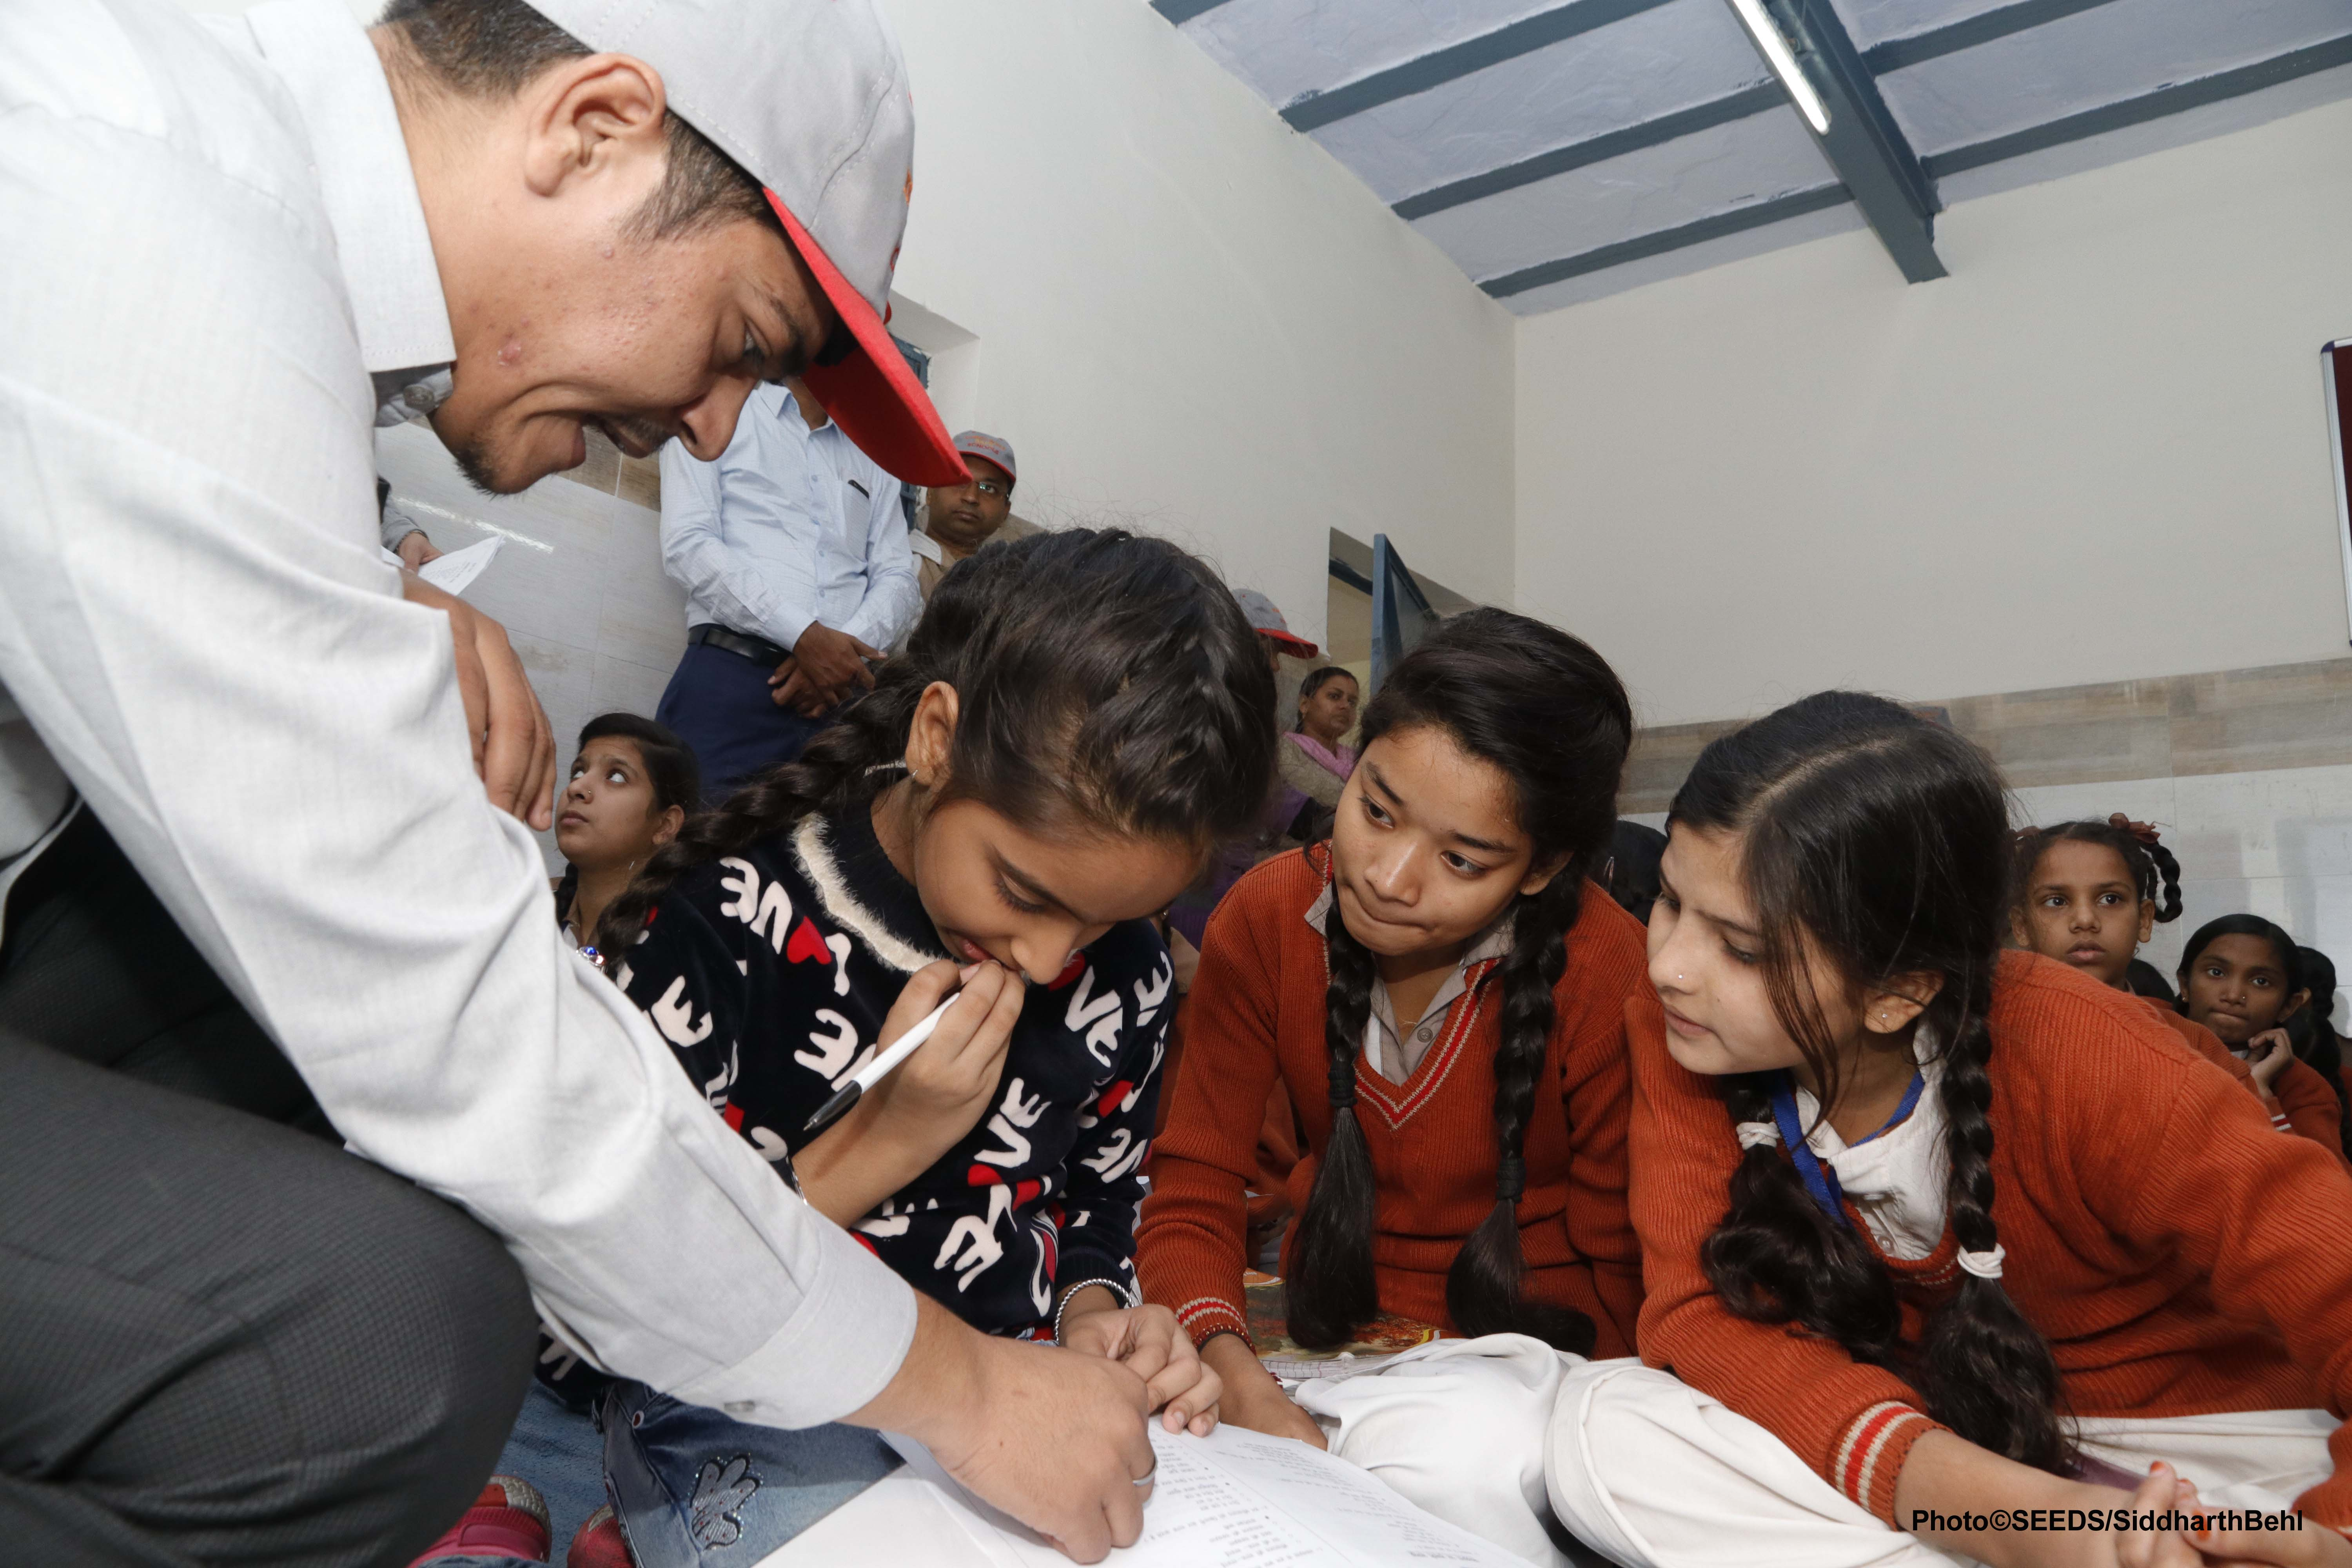 An expert from SEEDS conducting safety assesements with school children. (Source: SEEDS)